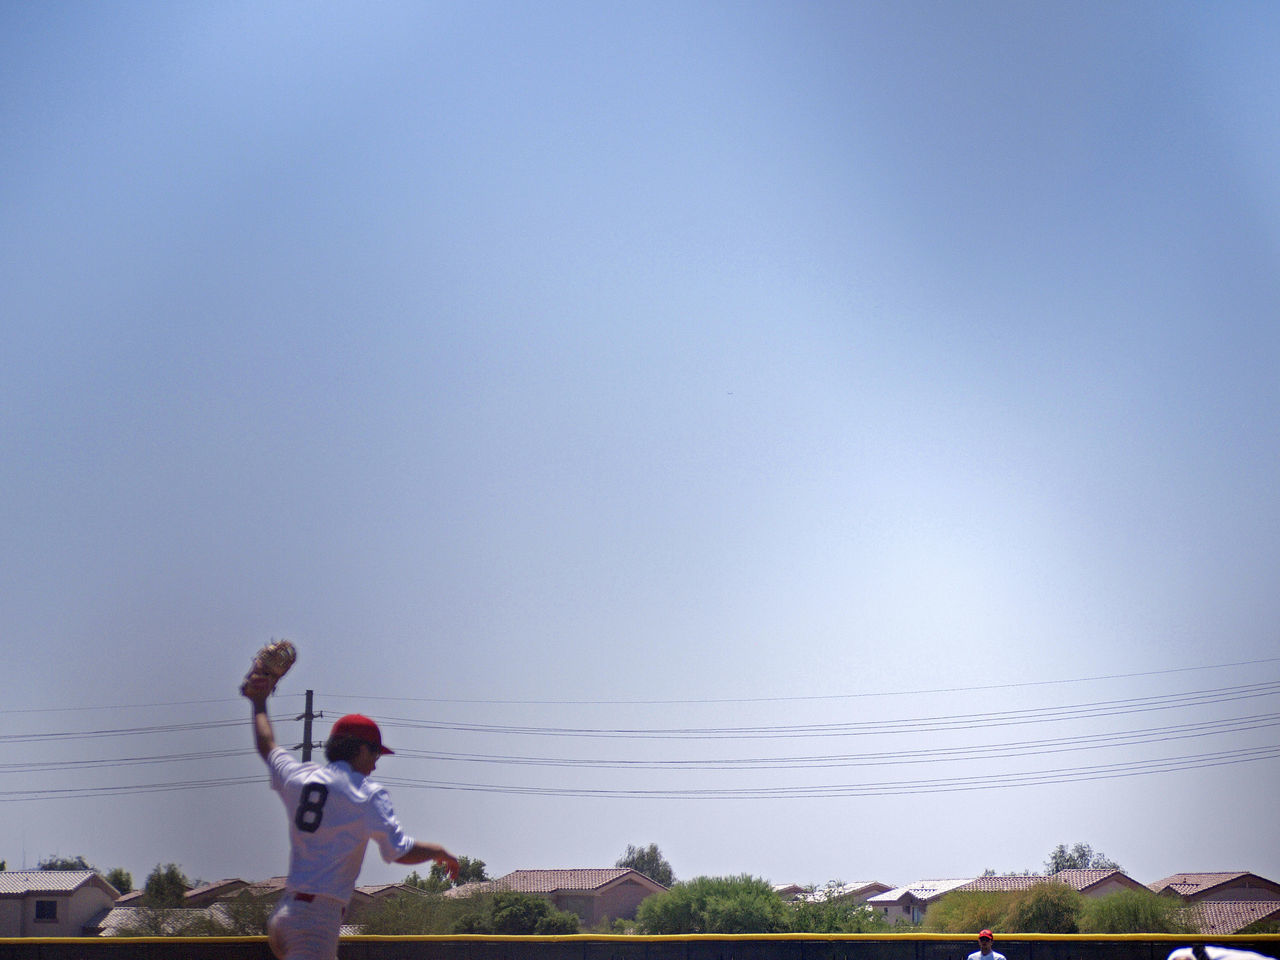 Baseball Baseball Players Beautiful Composition Big Sky Community Landscape Lines And Angles Neighborhood Homes Sky